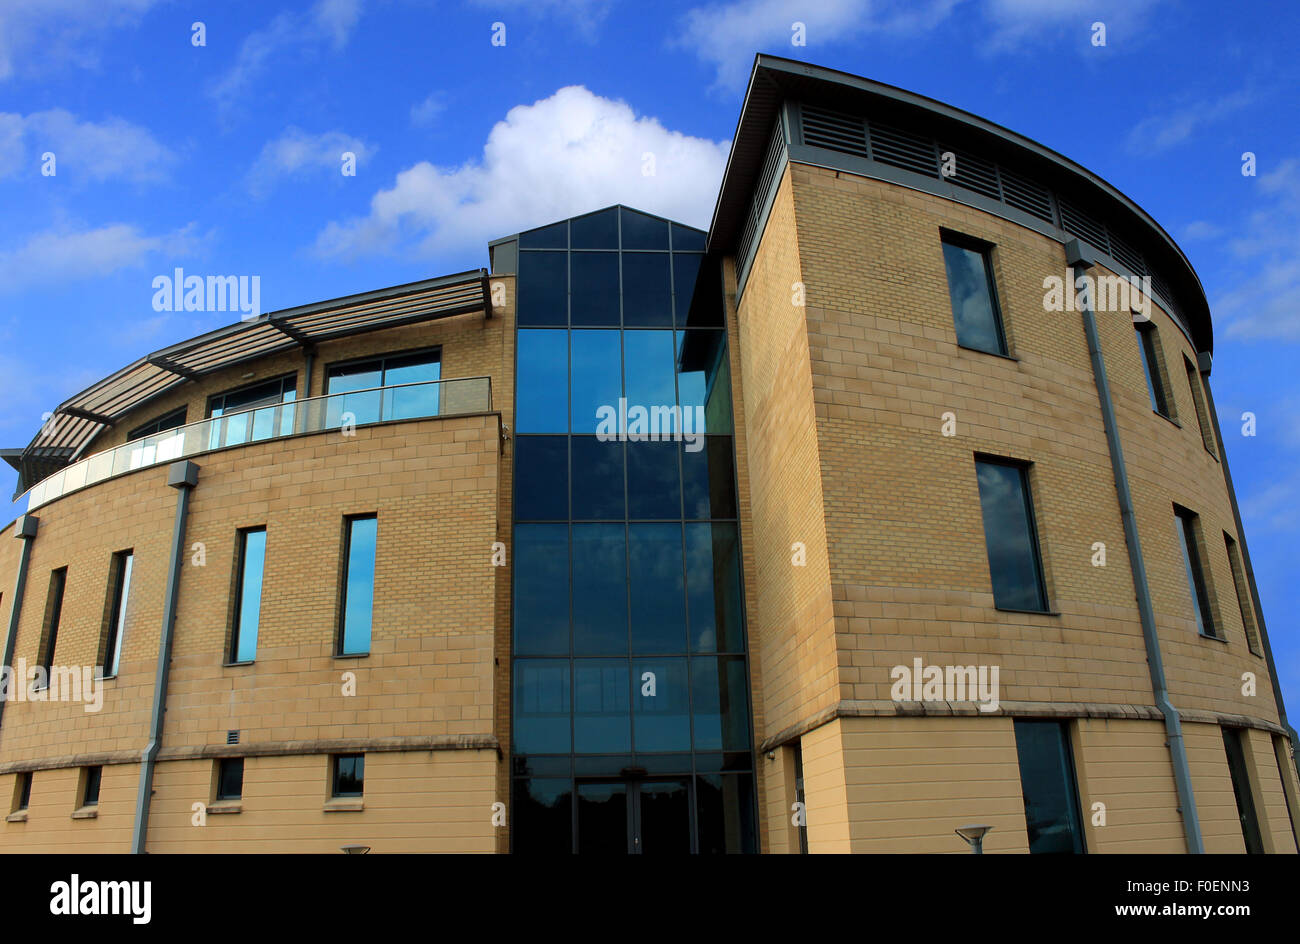 Exterior of a new modern office building with blue sky and clouds. - Stock Image